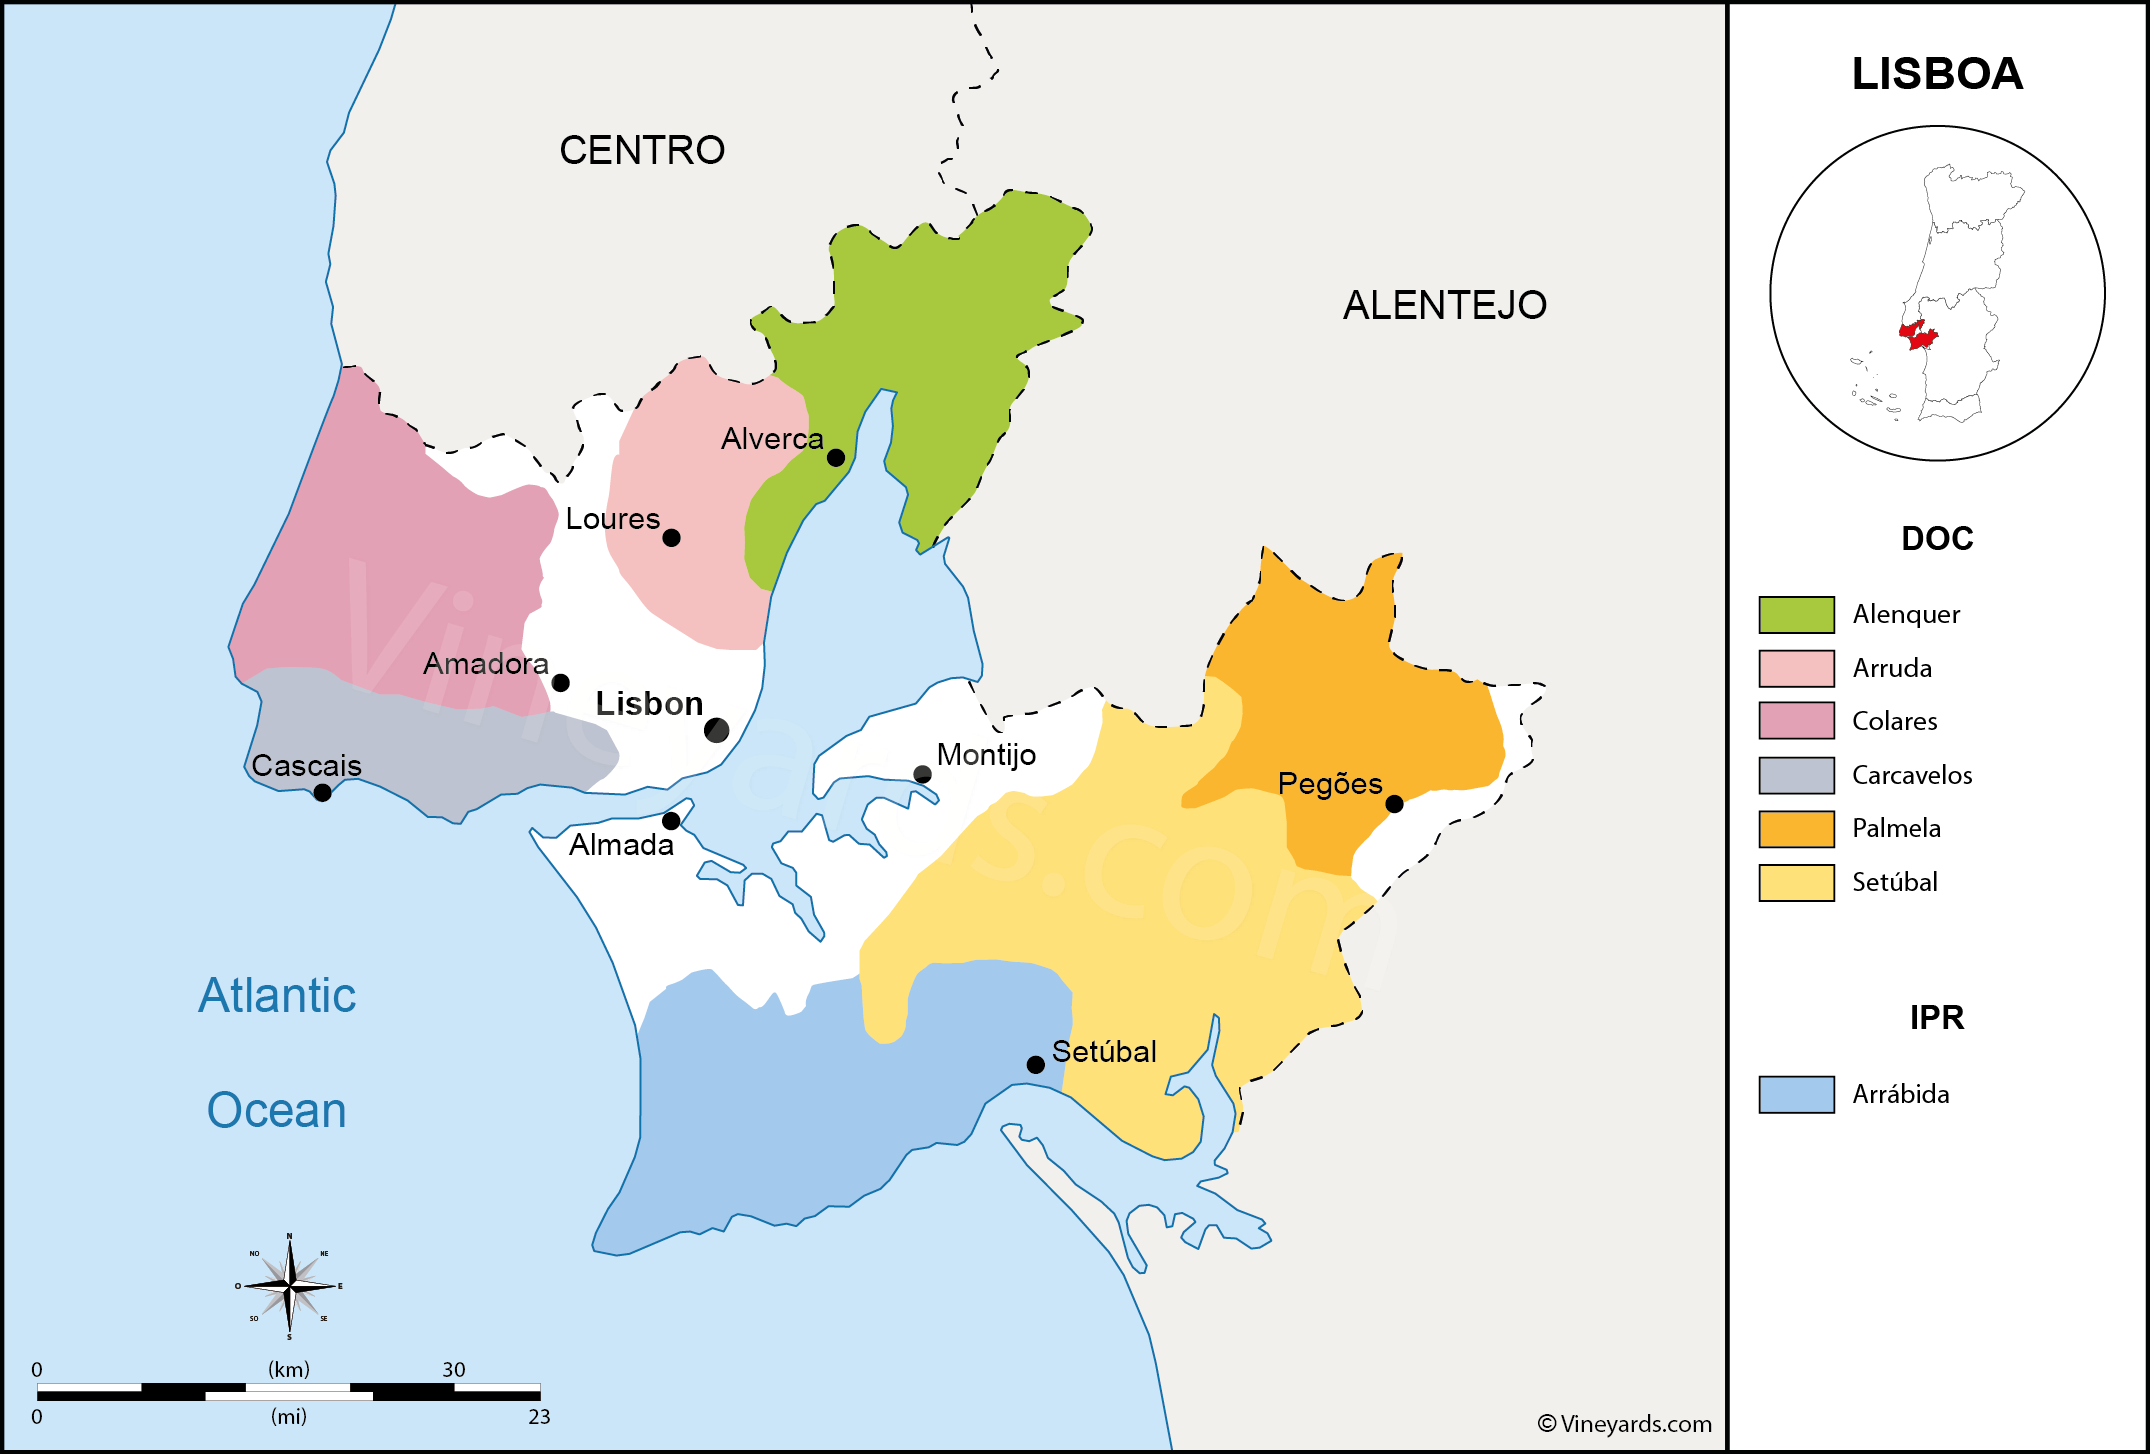 Wine Regions in Lisboa